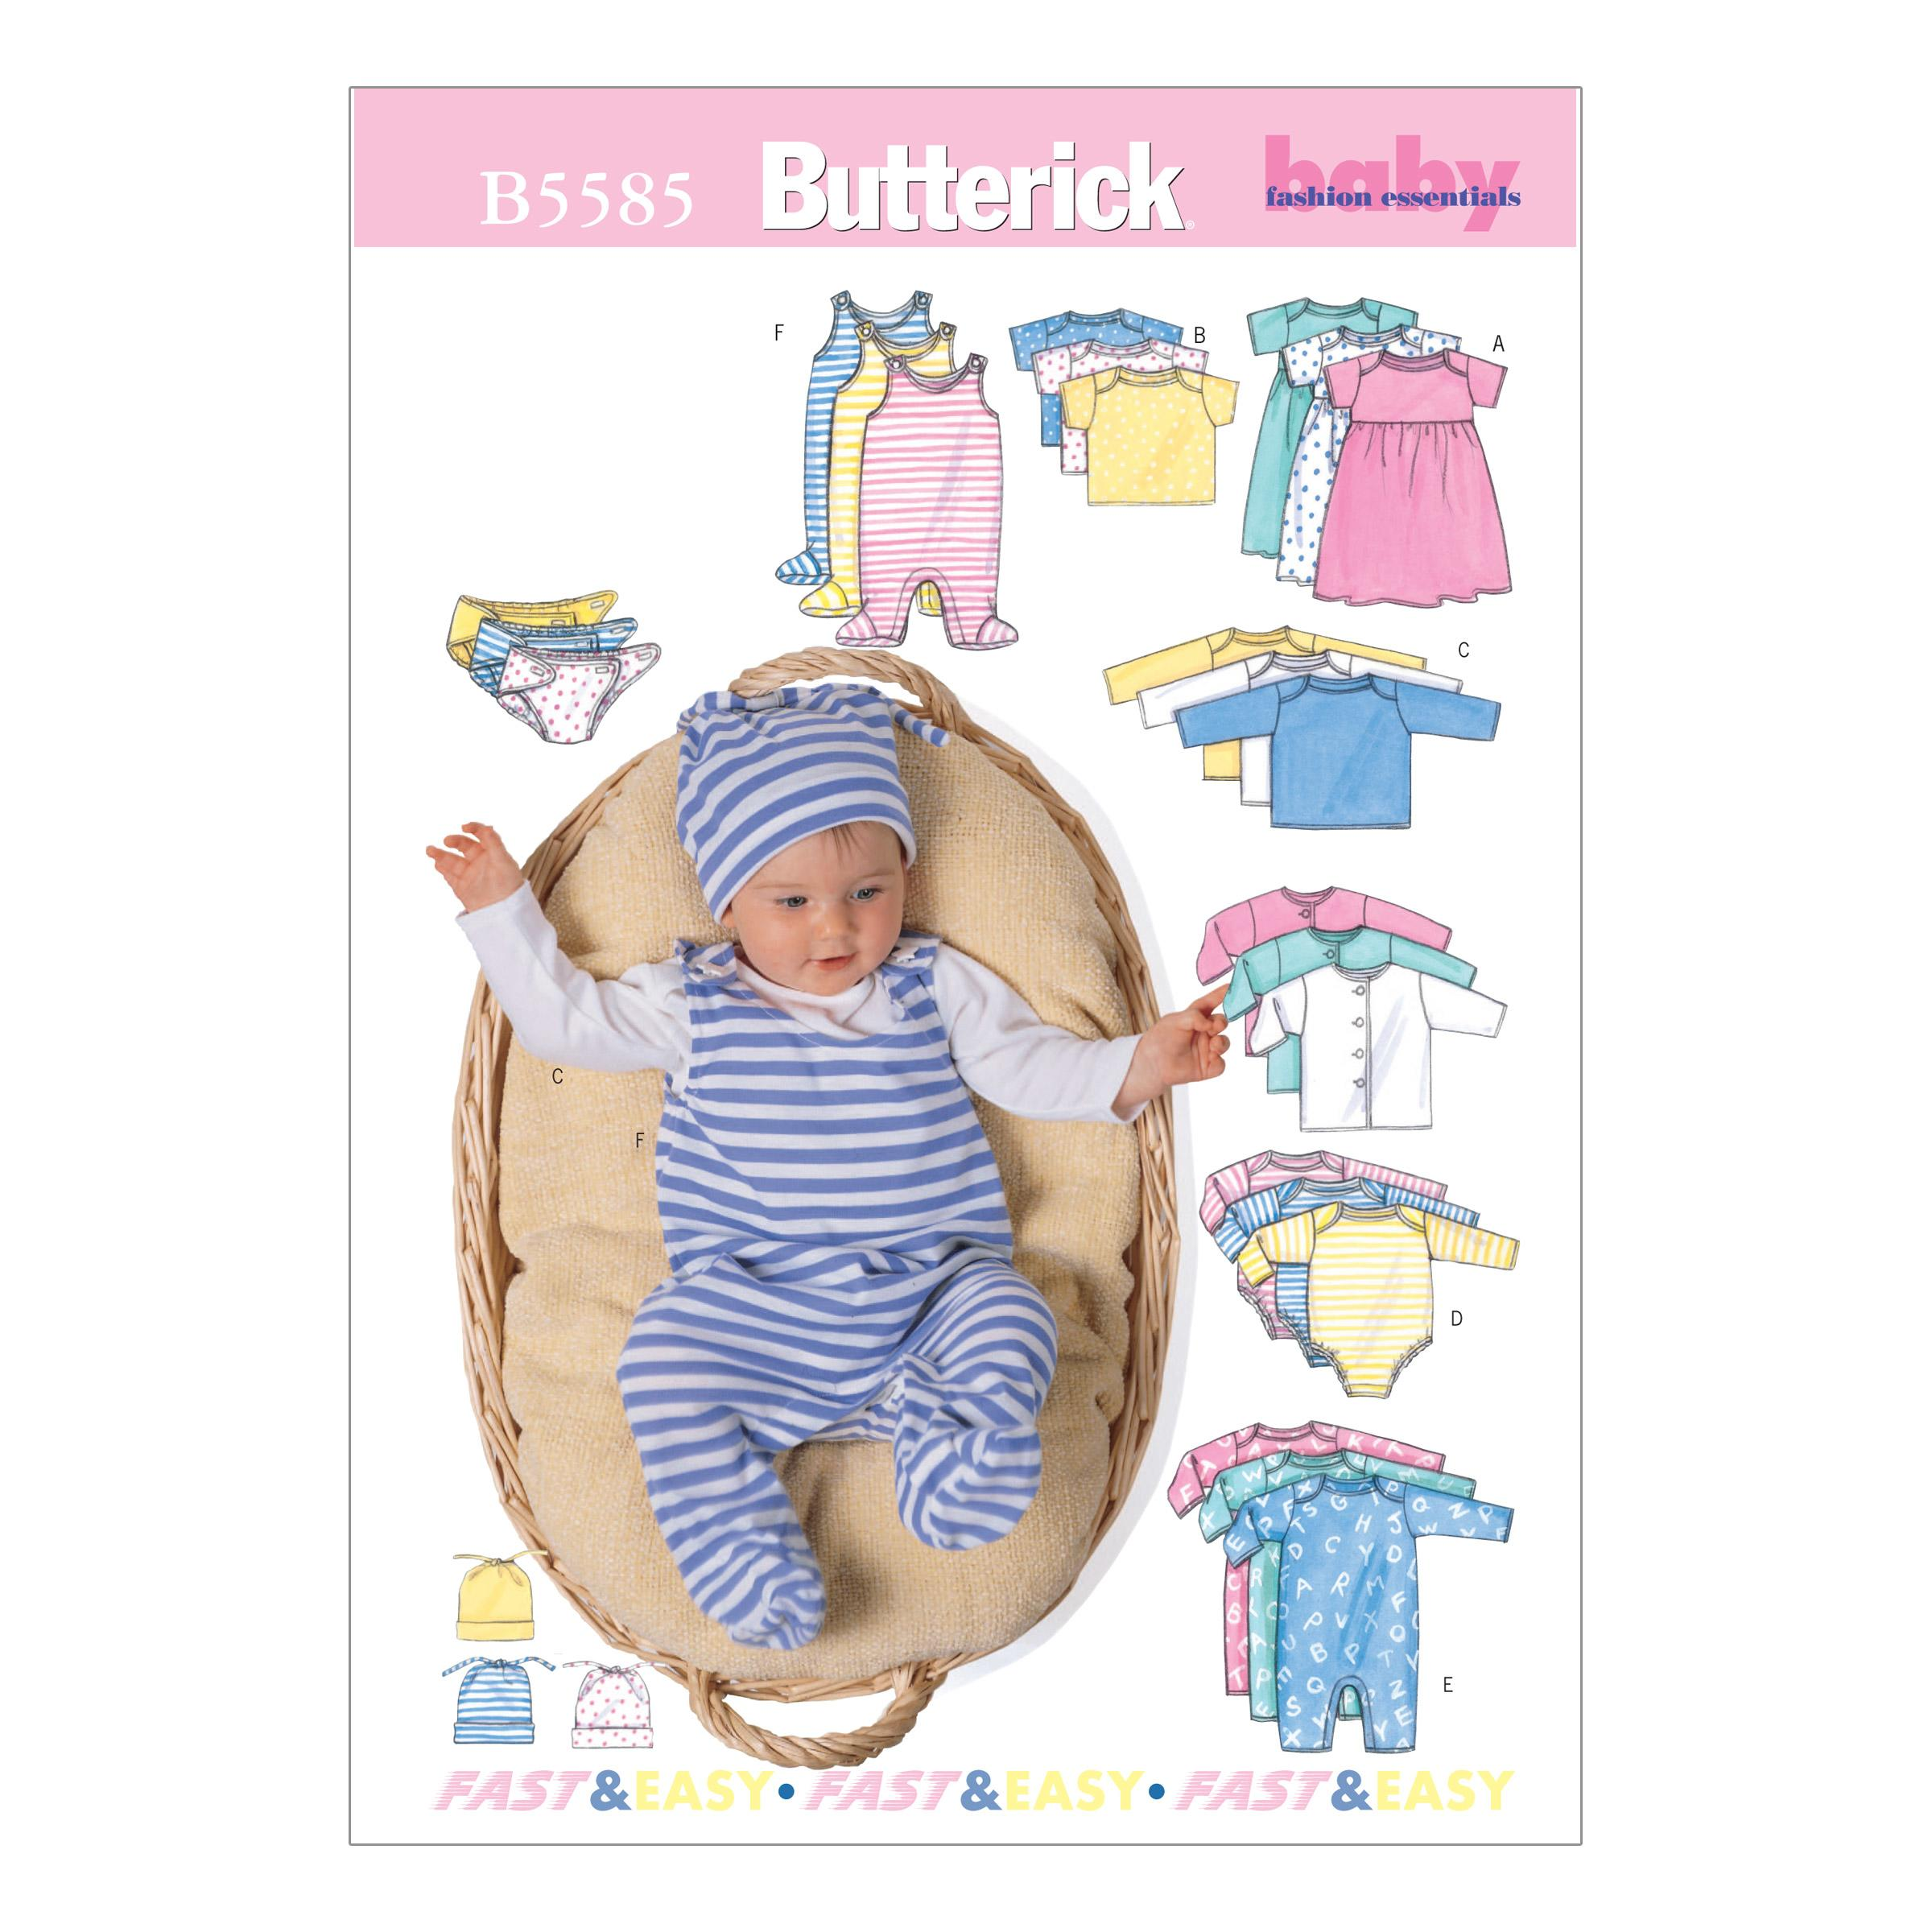 Butterick B5585 Infants' Jacket, Dress, Top, Romper, Diaper Cover and Hat